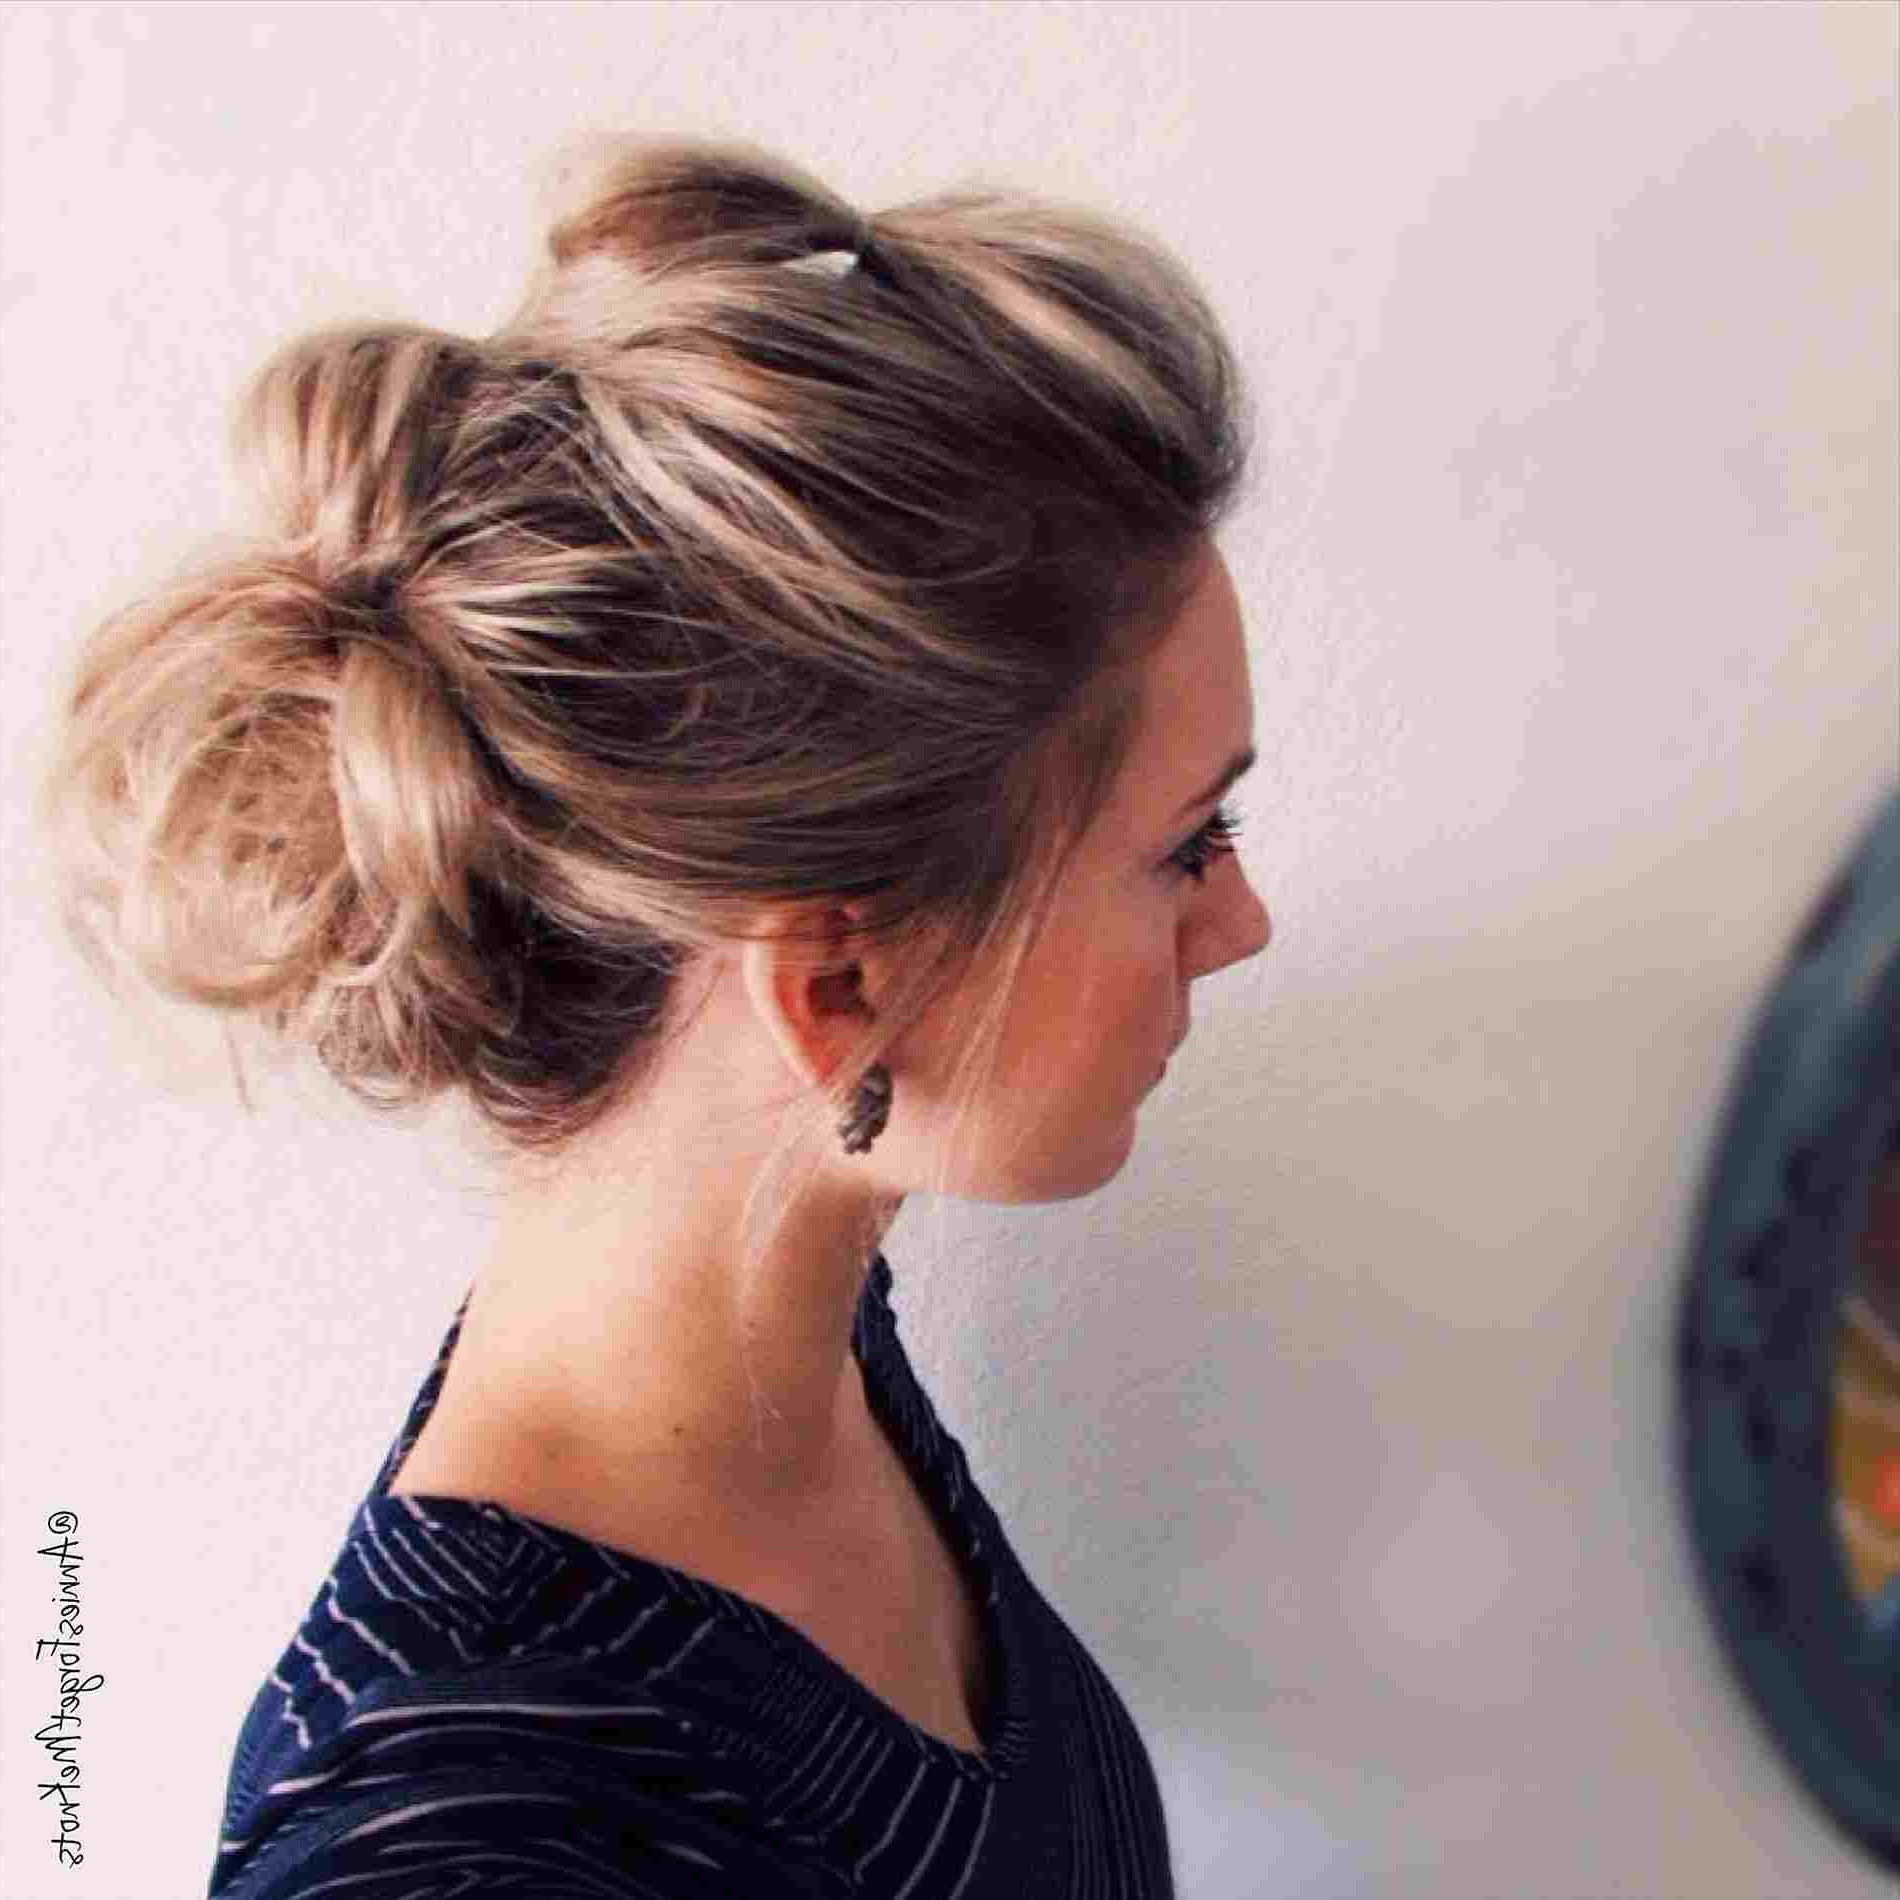 Well Liked High Bubble Ponytail Hairstyles For Punk Ponytail Hairstyles High Ponytail Hairstyles Decoration Best (View 20 of 20)